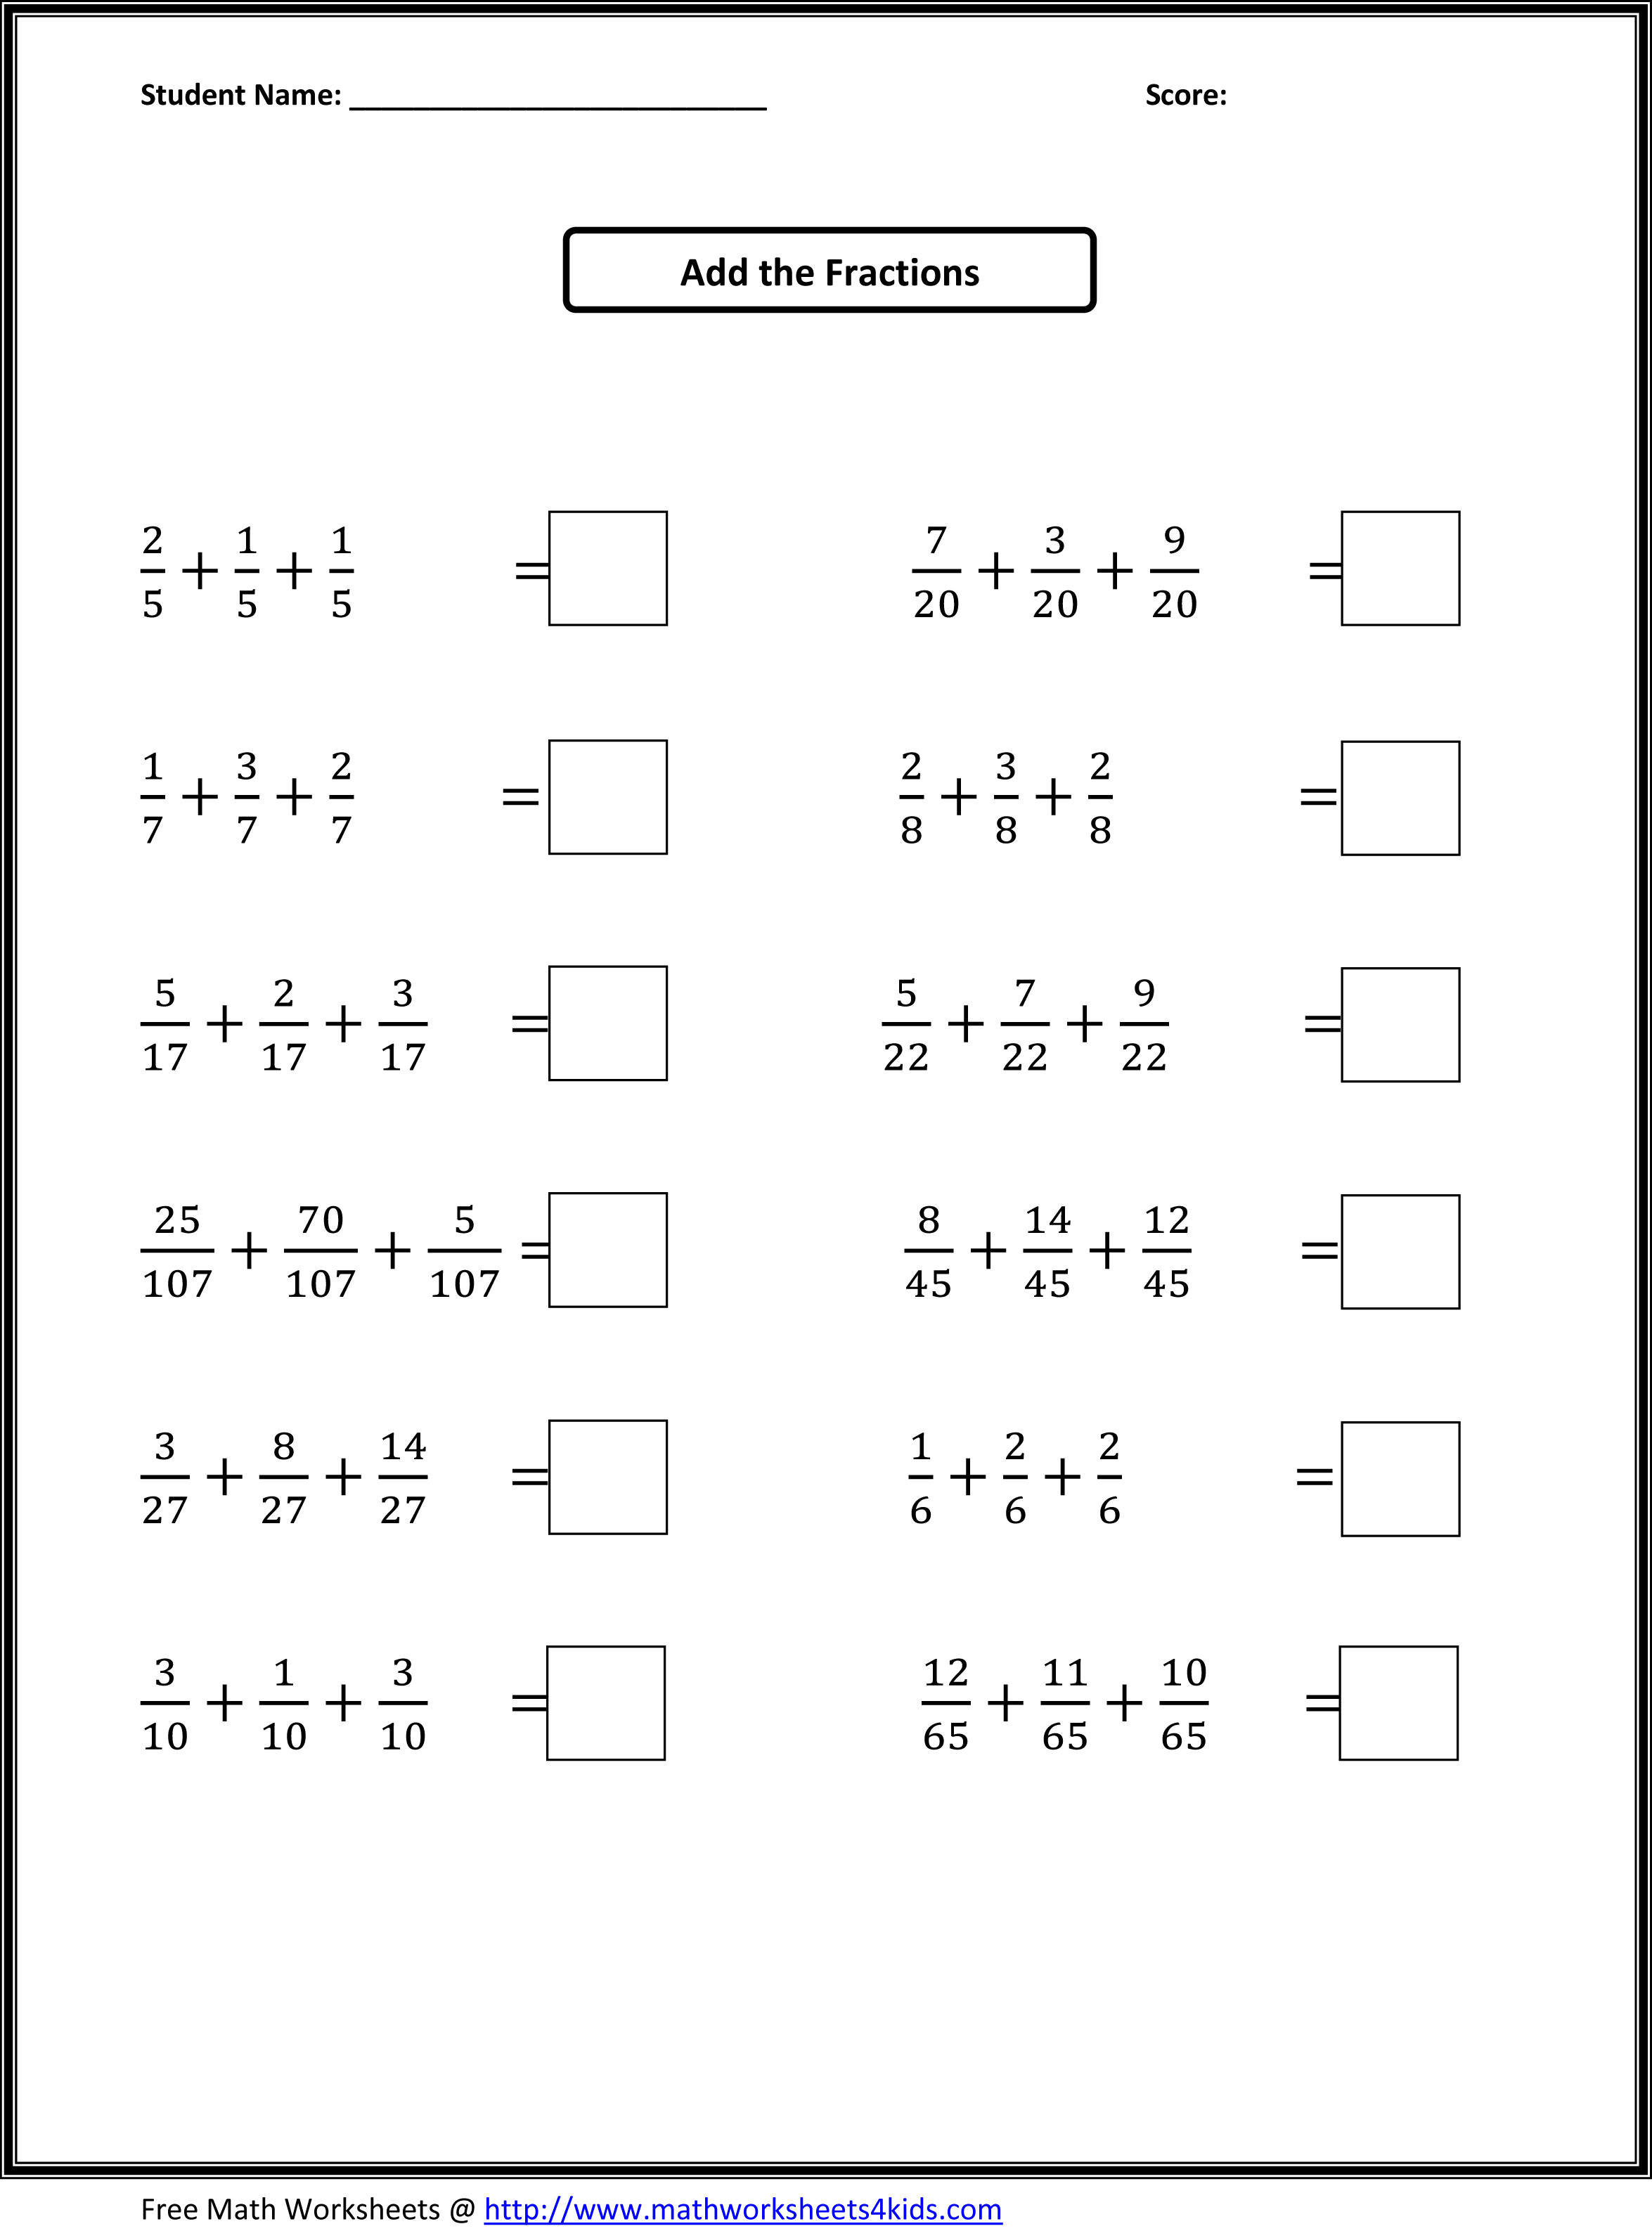 11 Best Images Of Adding Mixed Fractions Worksheets 4th